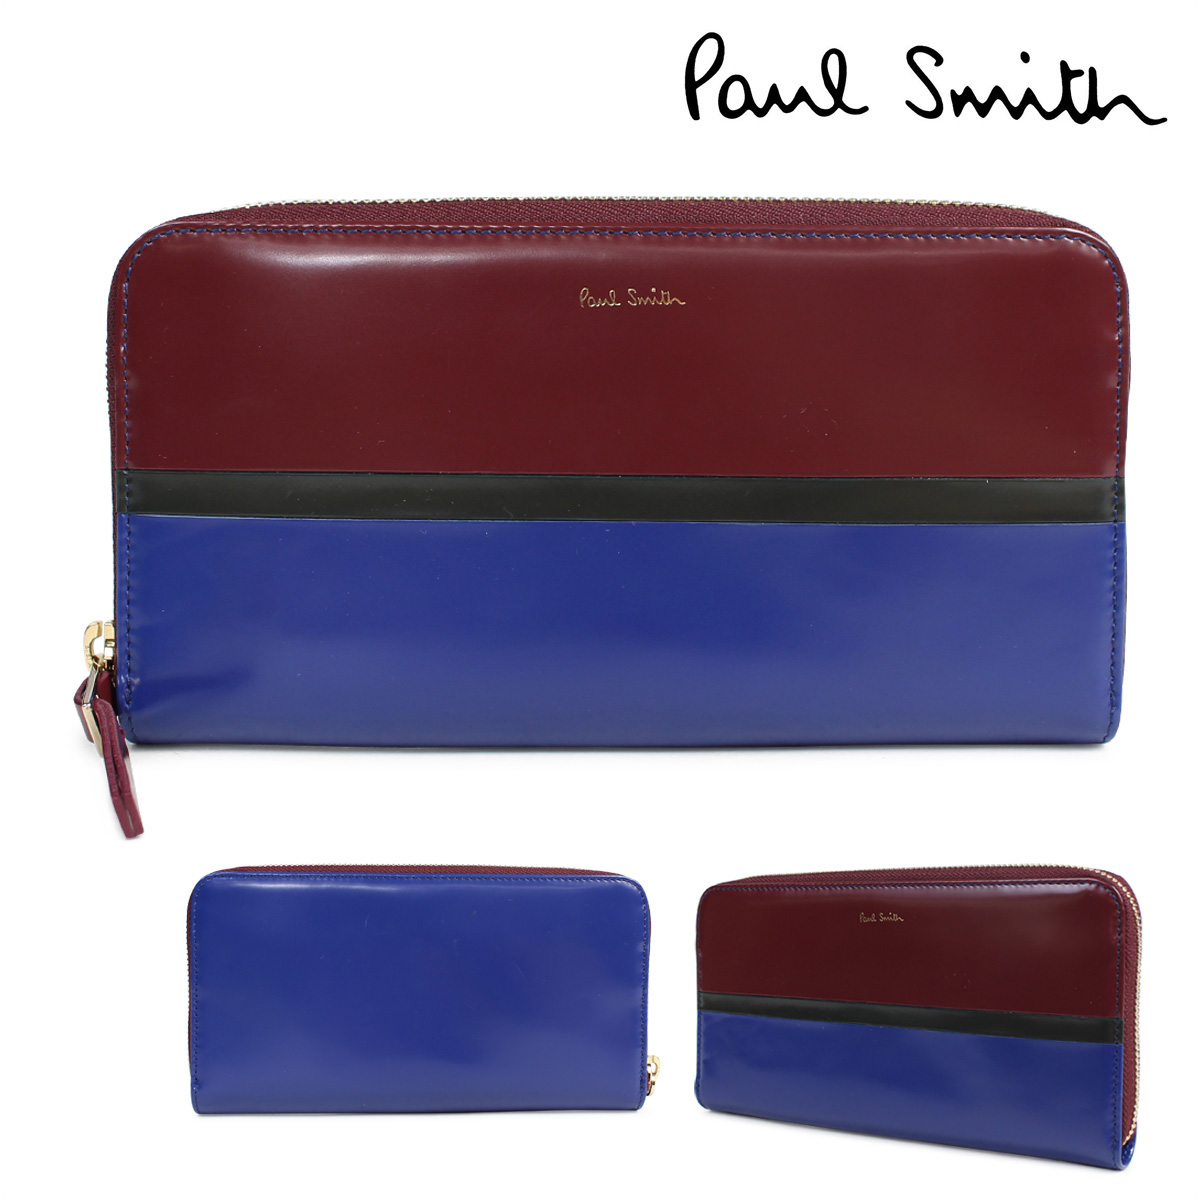 Allsports Paul Smith Wallet Ladys Long Wallet Paul Smith Genuine